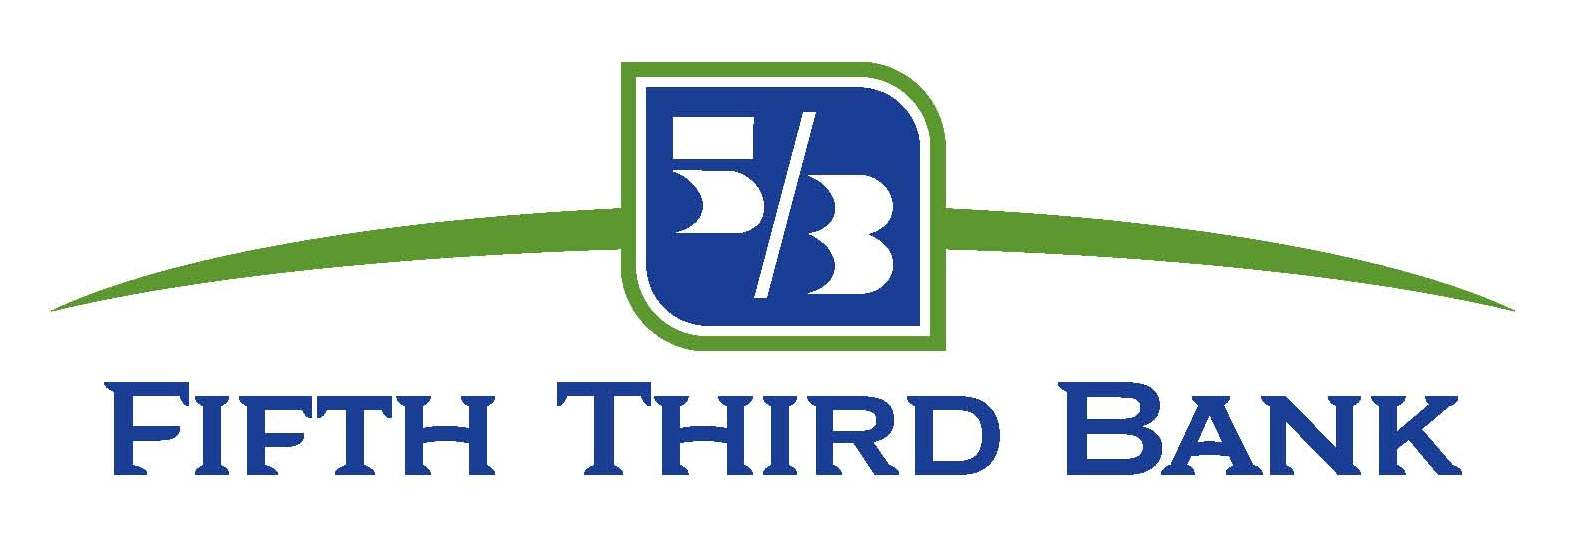 Frankenmuth Social Media Conference Sponsor - Fifth Third Bank